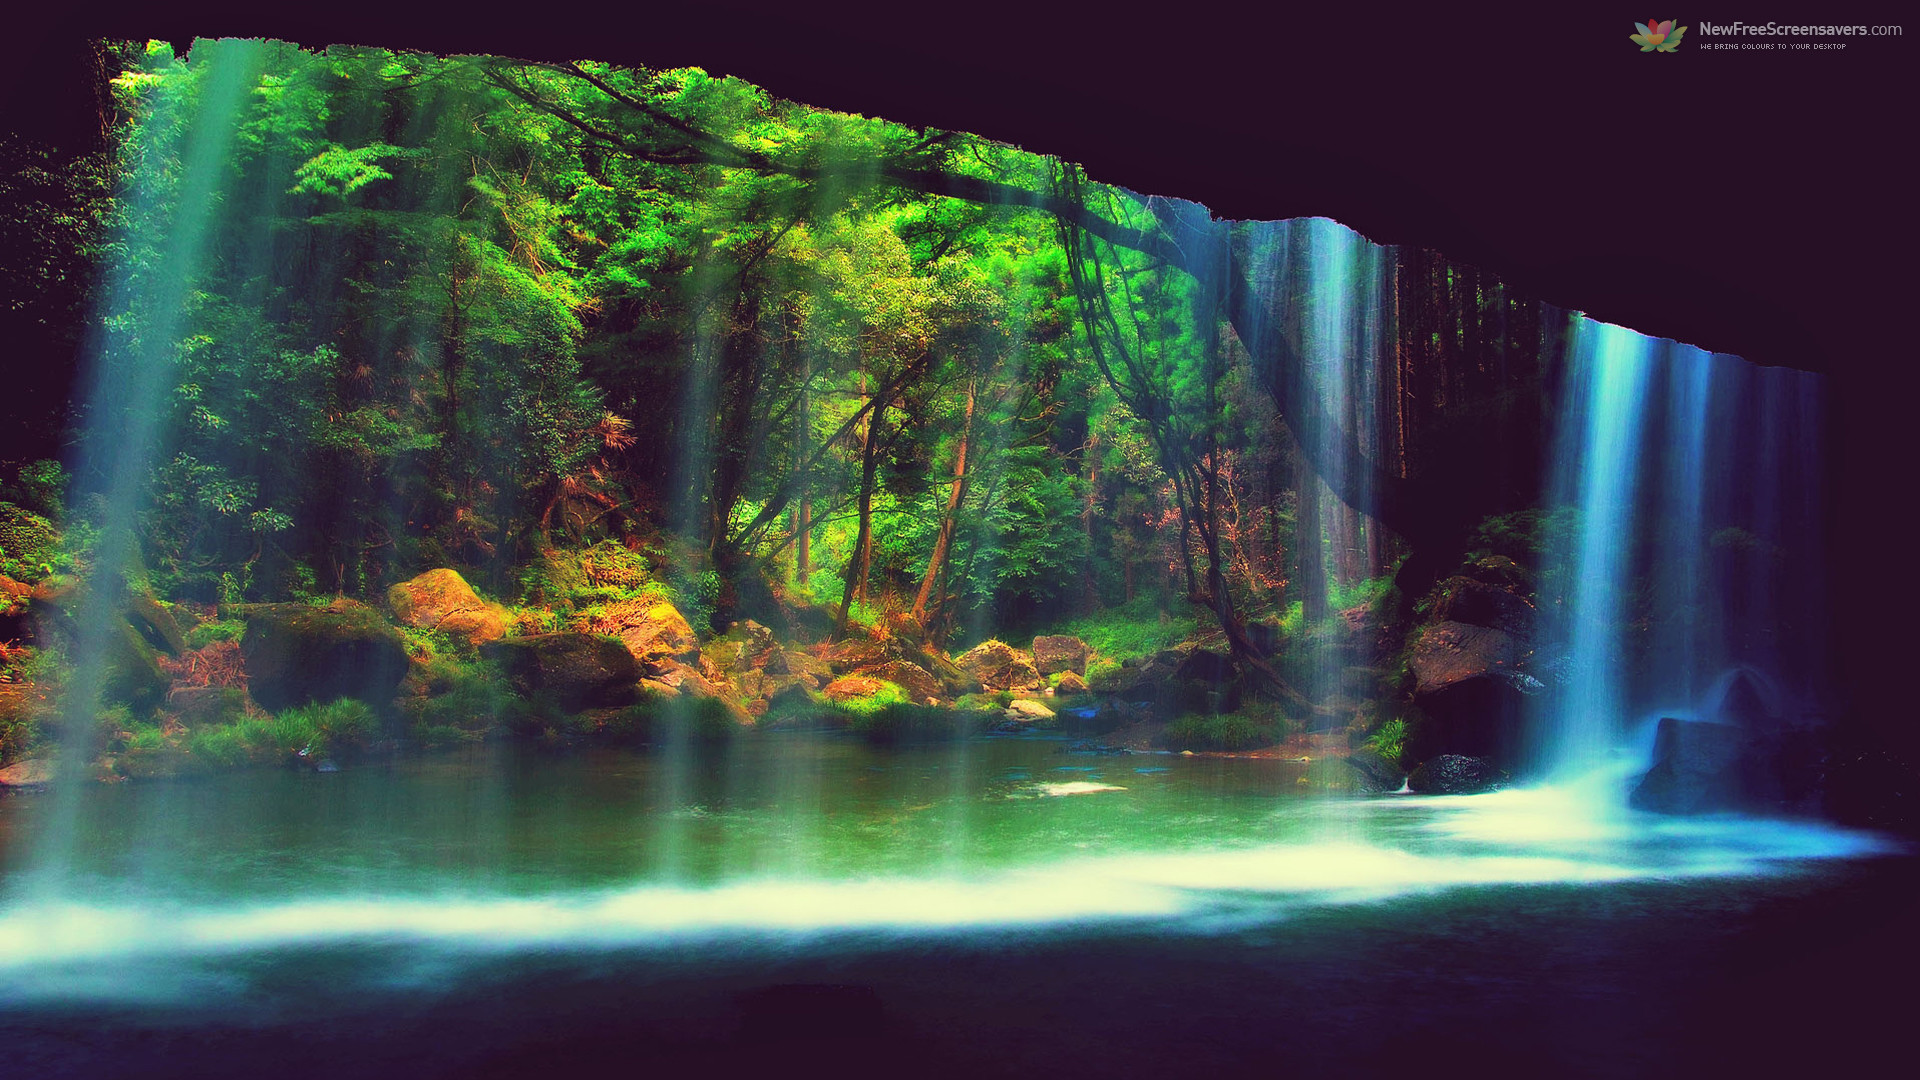 .com offers a collection of completely free and secured screensavers .